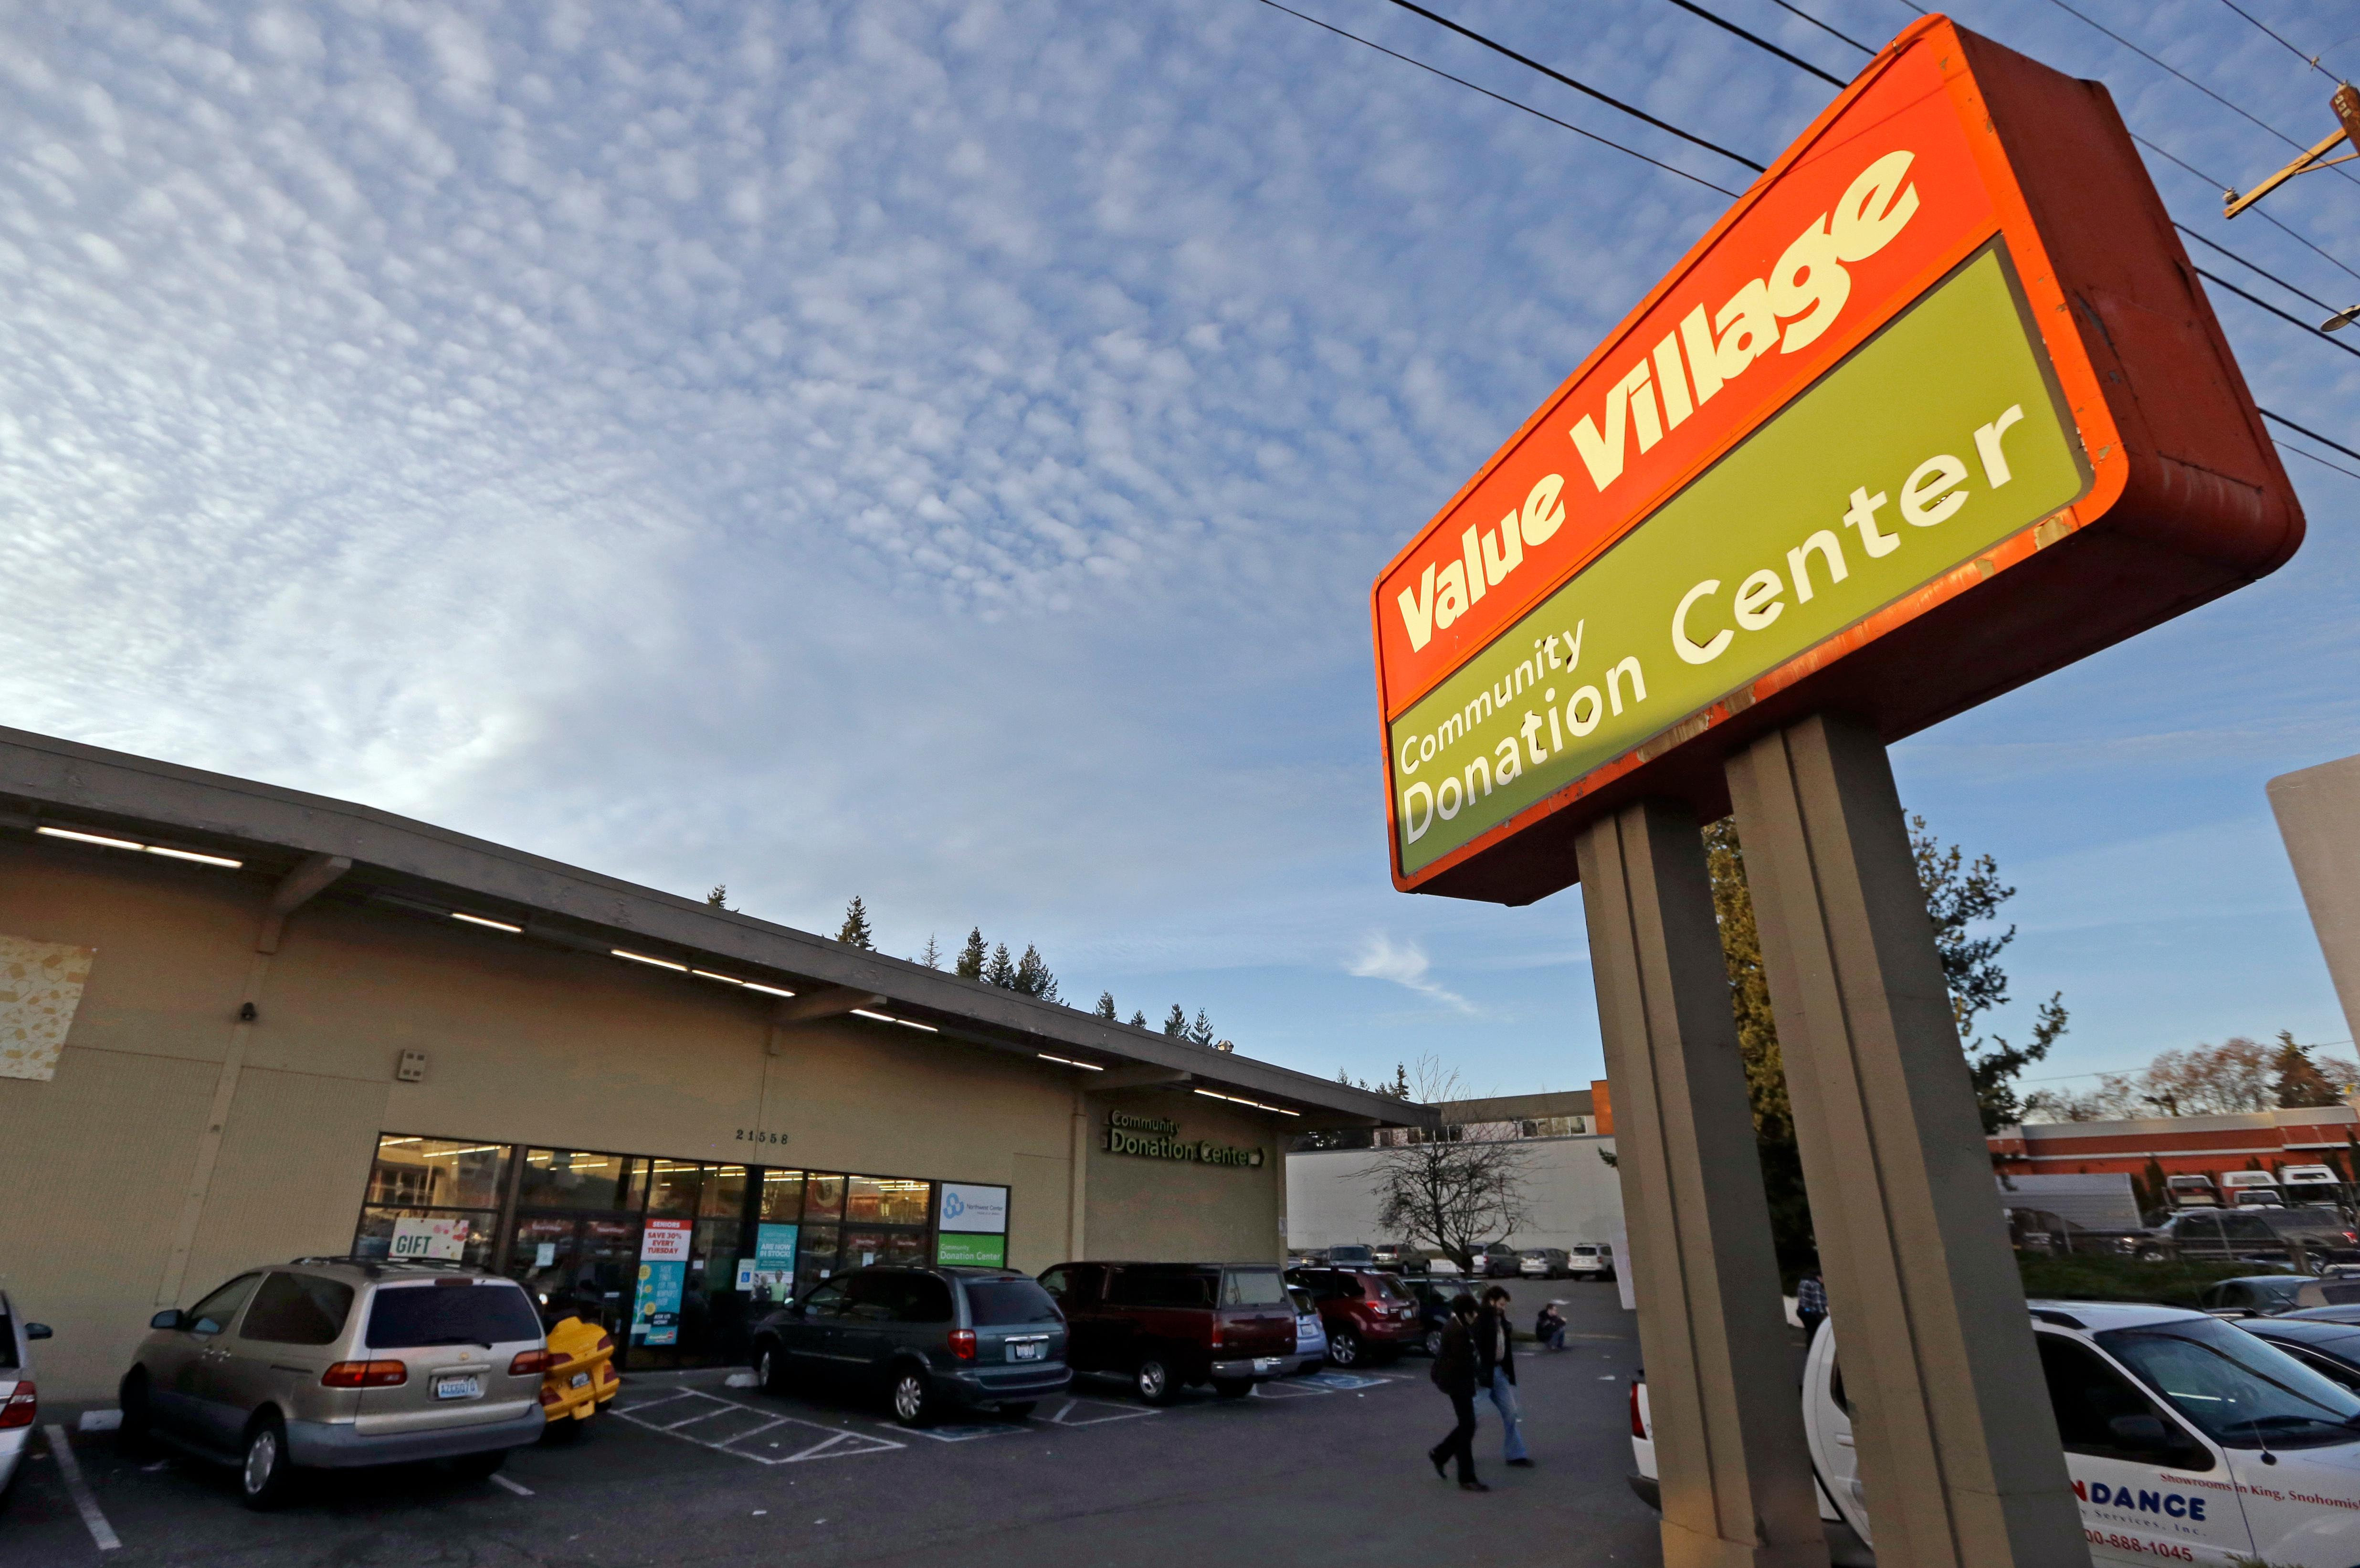 A Value Village store is seen Tuesday, Dec. 12, 2017, in Edmonds, Wash. The company that operates 300 Value Village, Savers and other thrift stores in the U.S., Canada and Australia is suing Washington state Attorney General Bob Ferguson, saying his office has violated its rights by demanding $3.2 million to settle a three-year investigation. (AP Photo/Elaine Thompson)